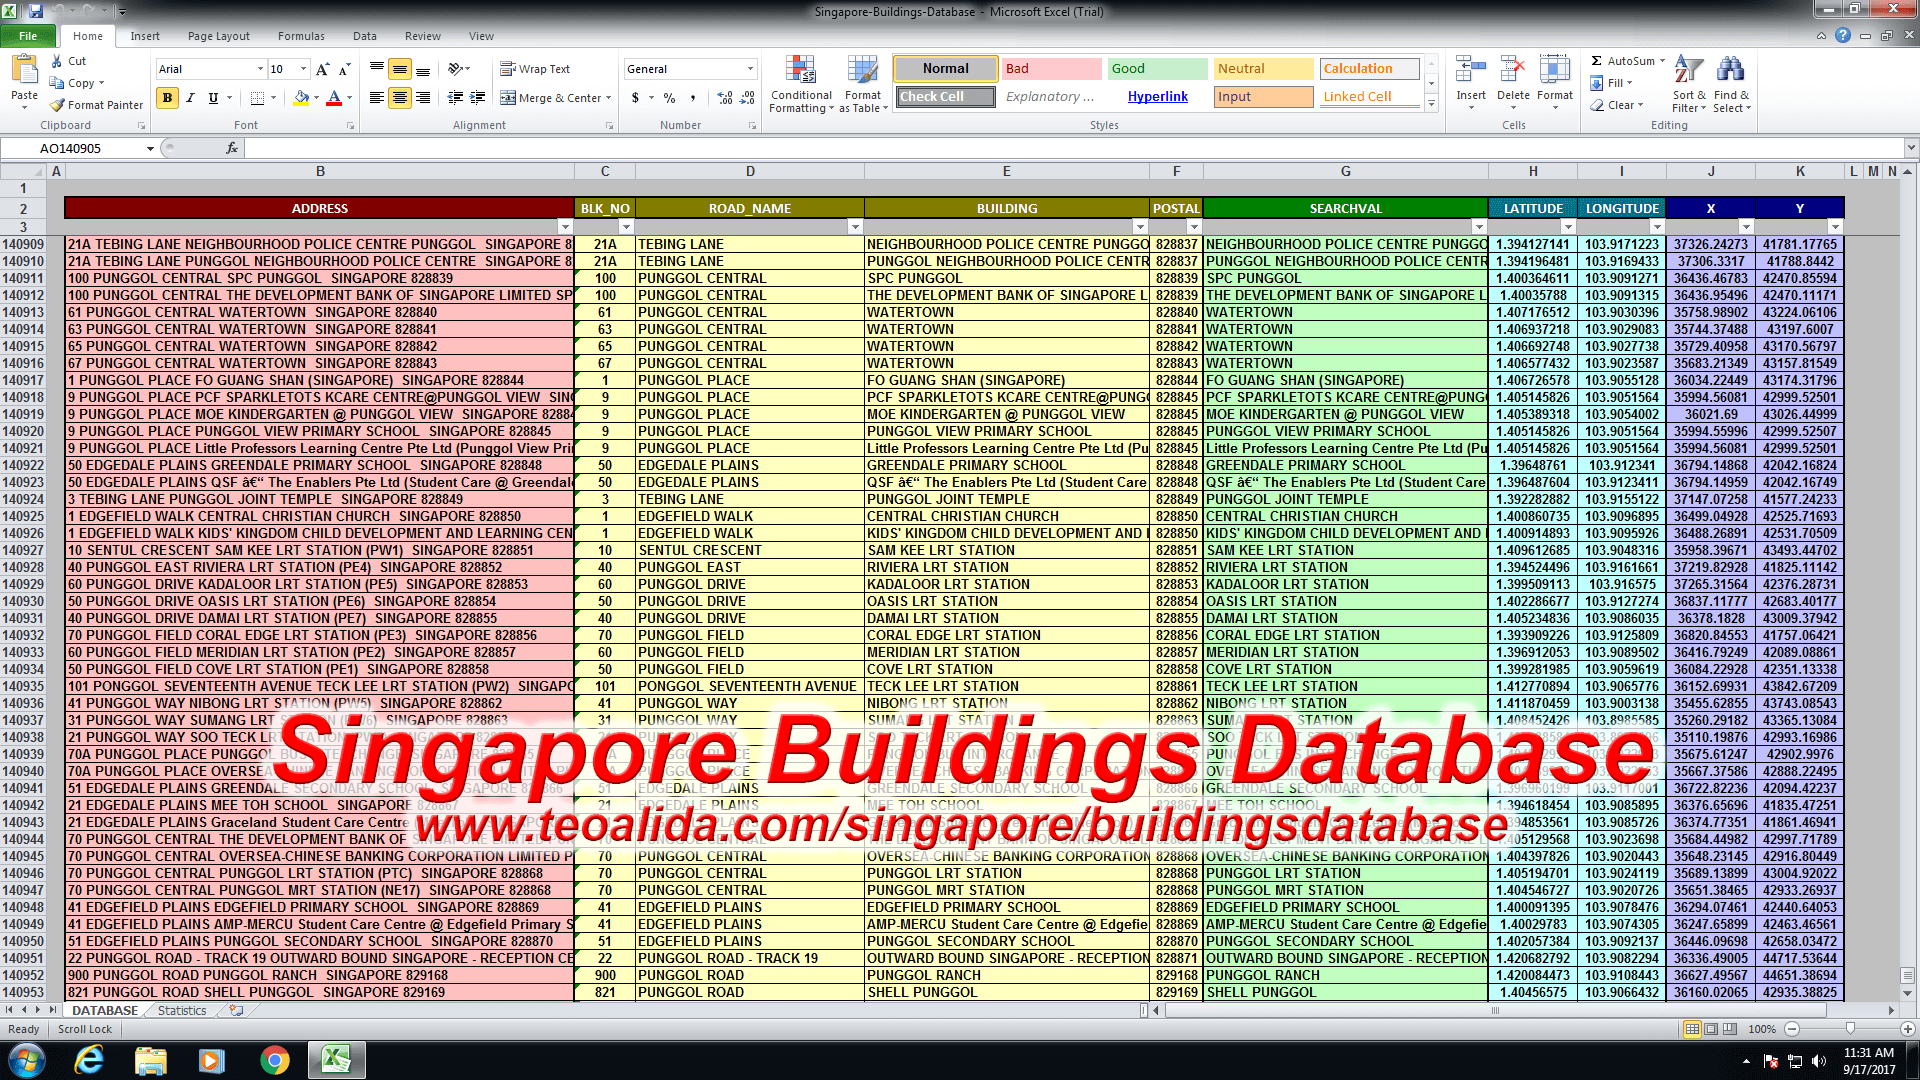 Singapore buildings database with postal codes - HDB, condo, landed,  commercial, industrial, etc | Teoalida Website